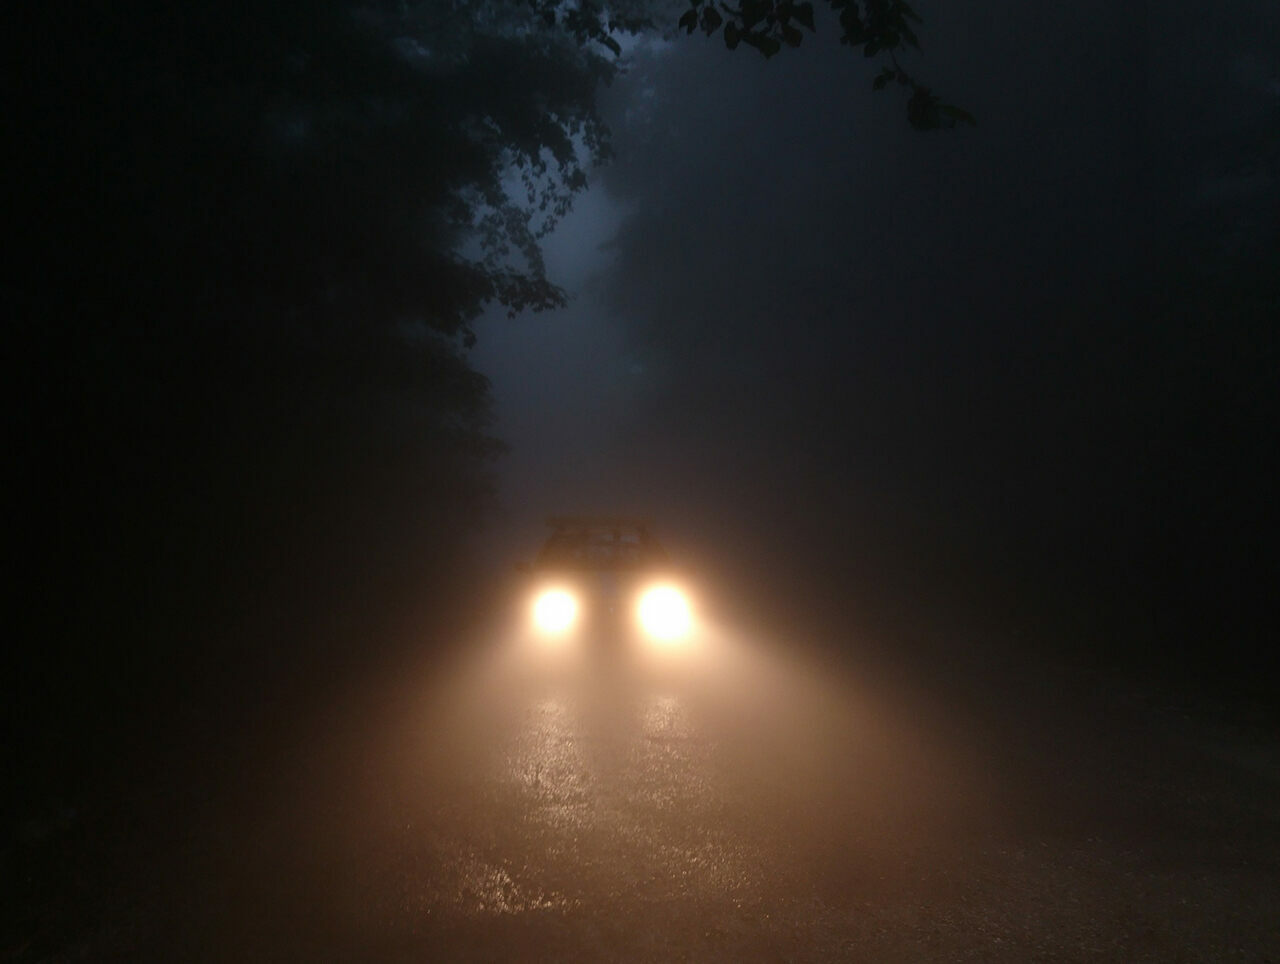 Eerie lights are a common sight in Clinch County, Georgia.